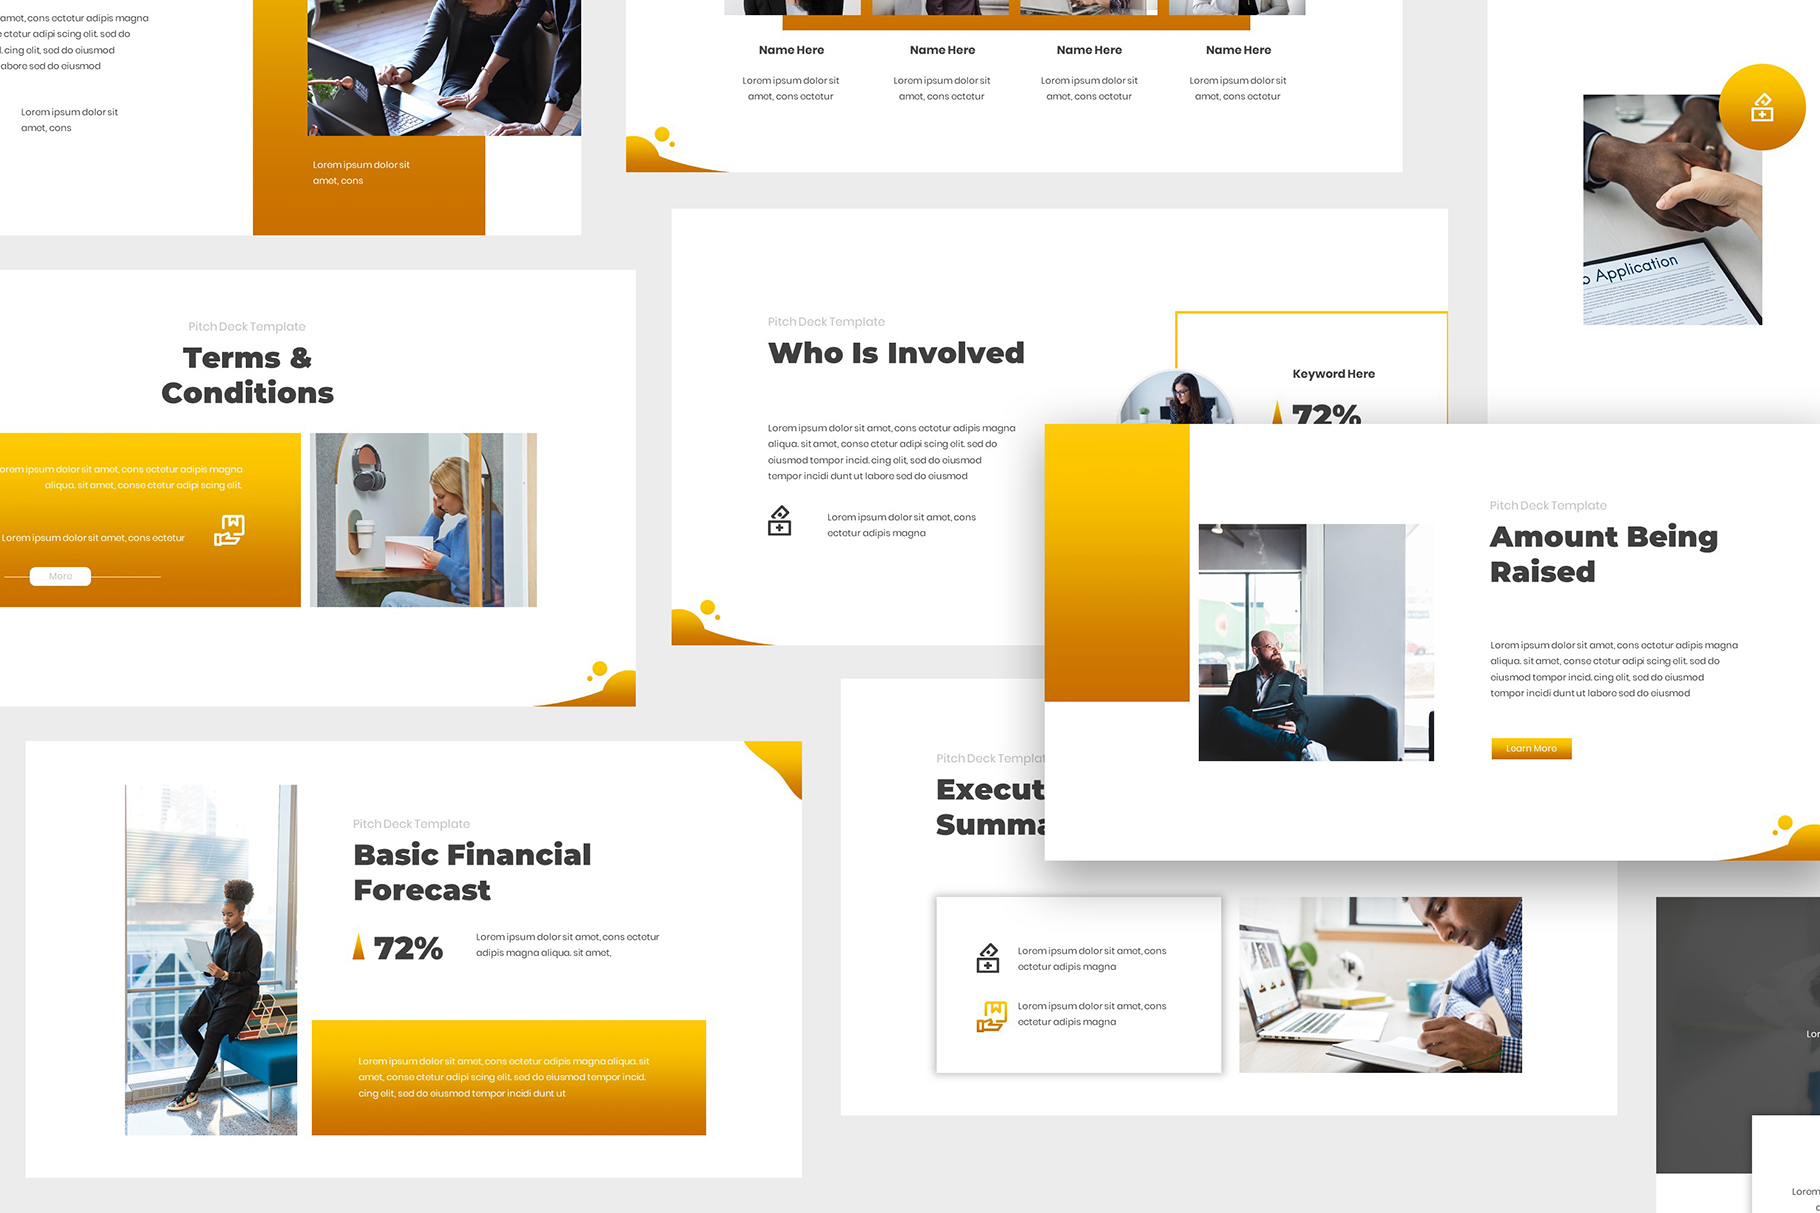 Investment Pitch Deck Powerpoint example image 3